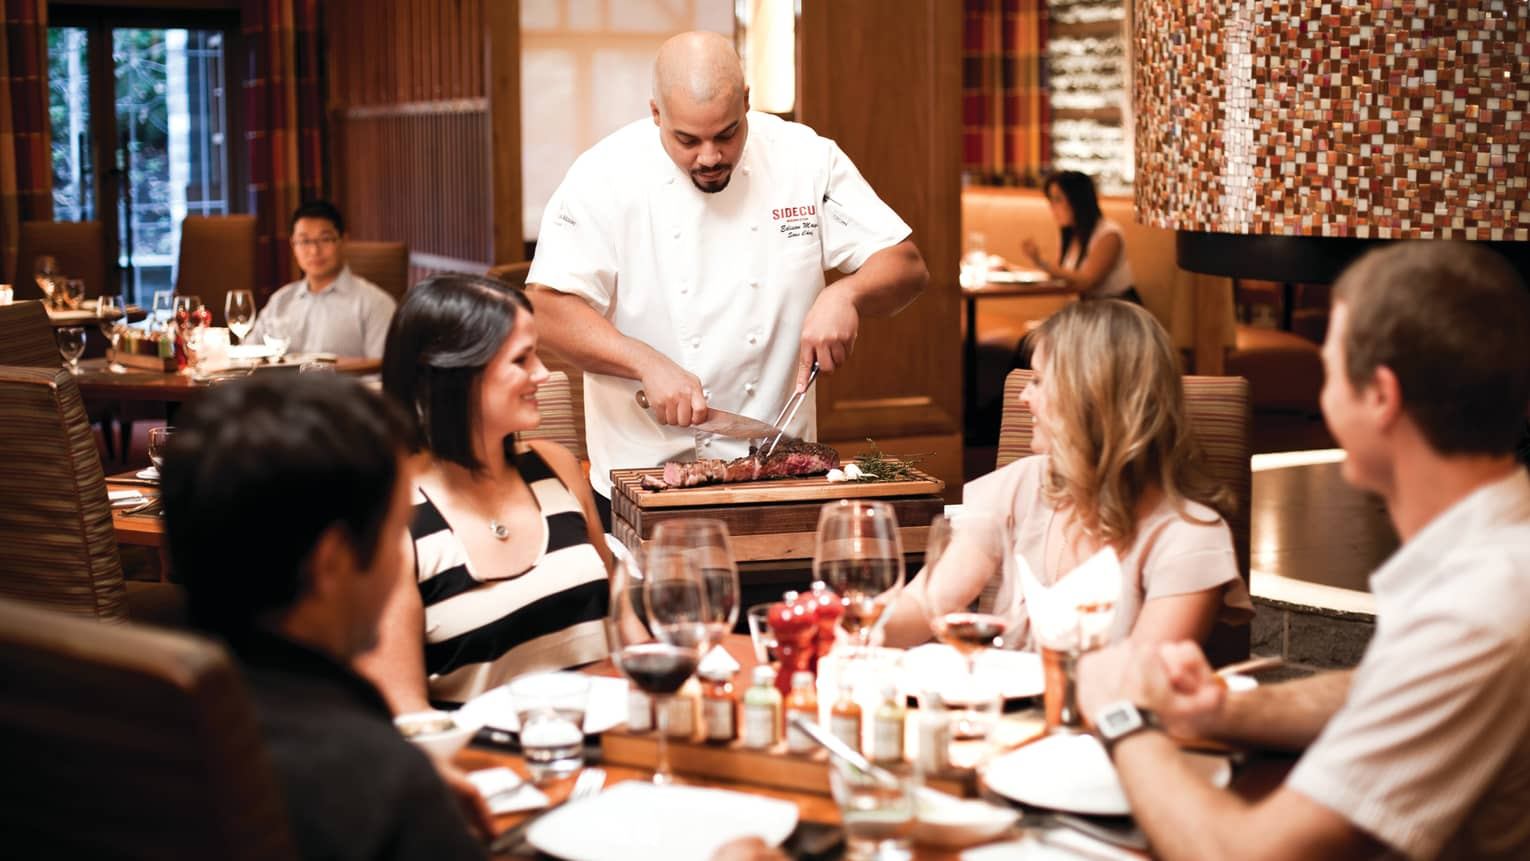 Chef slices steak on butcher board at dining table as guests watch, smile